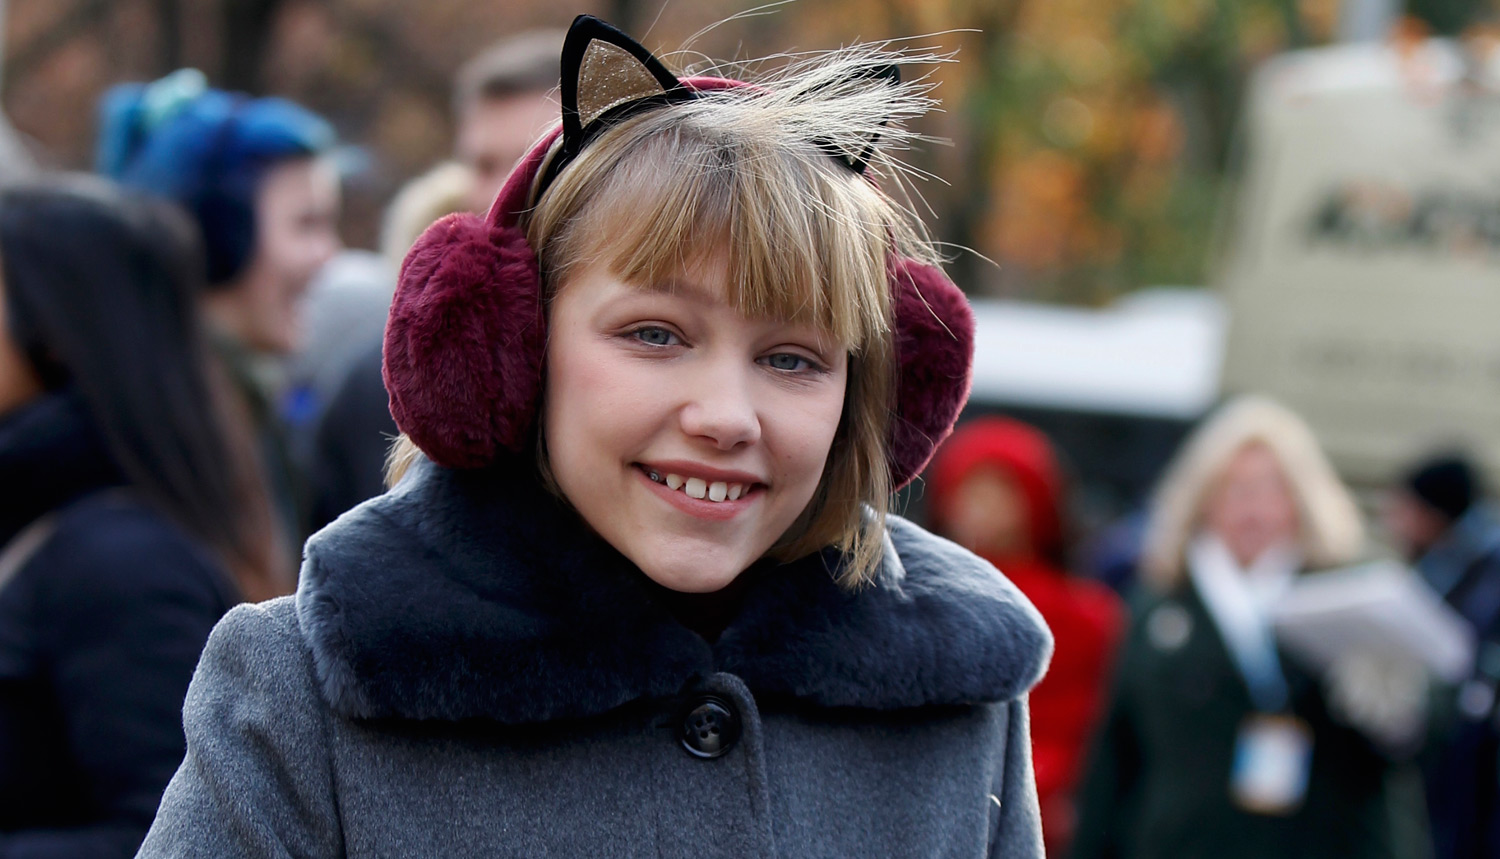 China mcclain breaking news and photos just jared jr page 5 - Grace Vanderwaal Performs In Macy S Parade Five Years After Watching From Crowd